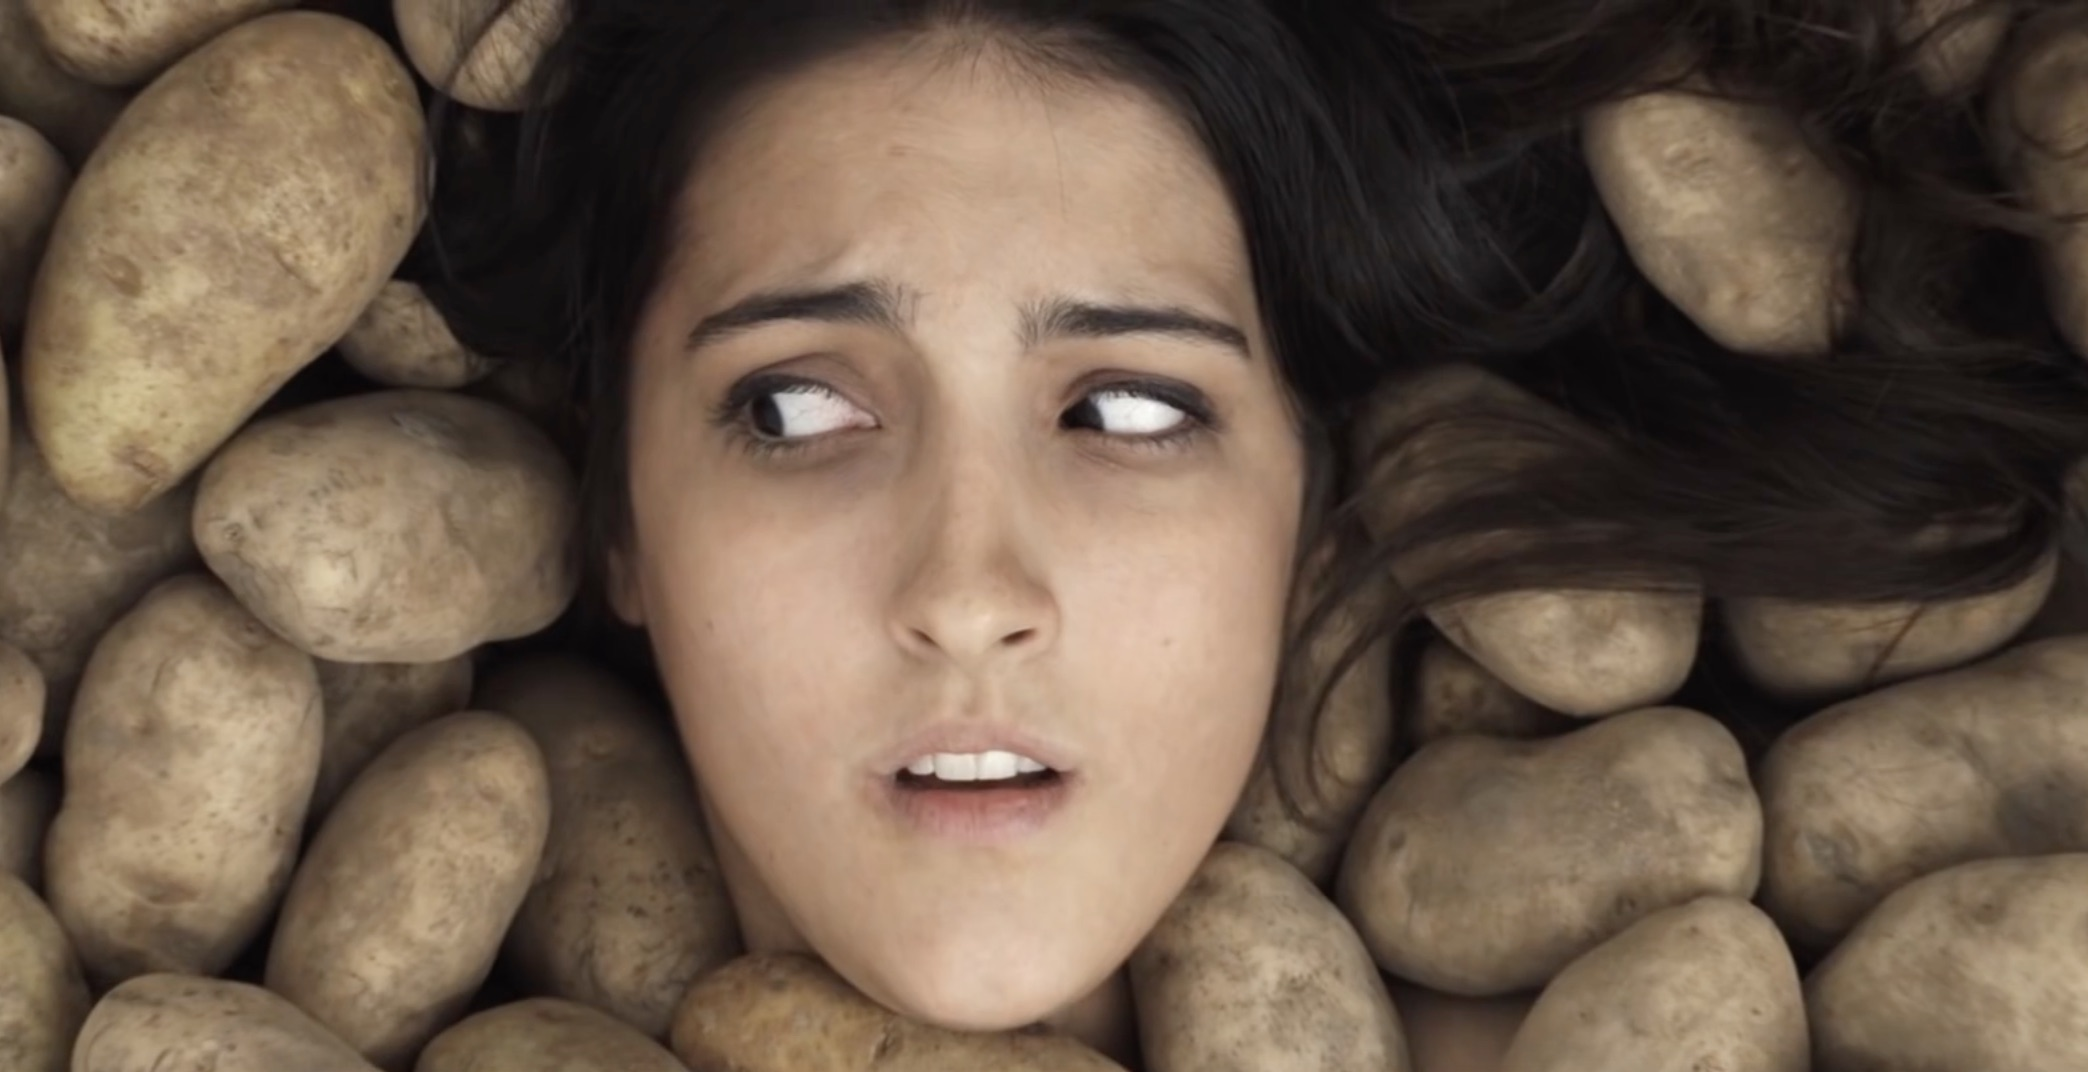 This hilarious horror movie trailer about potatoes is surprisingly terrifying